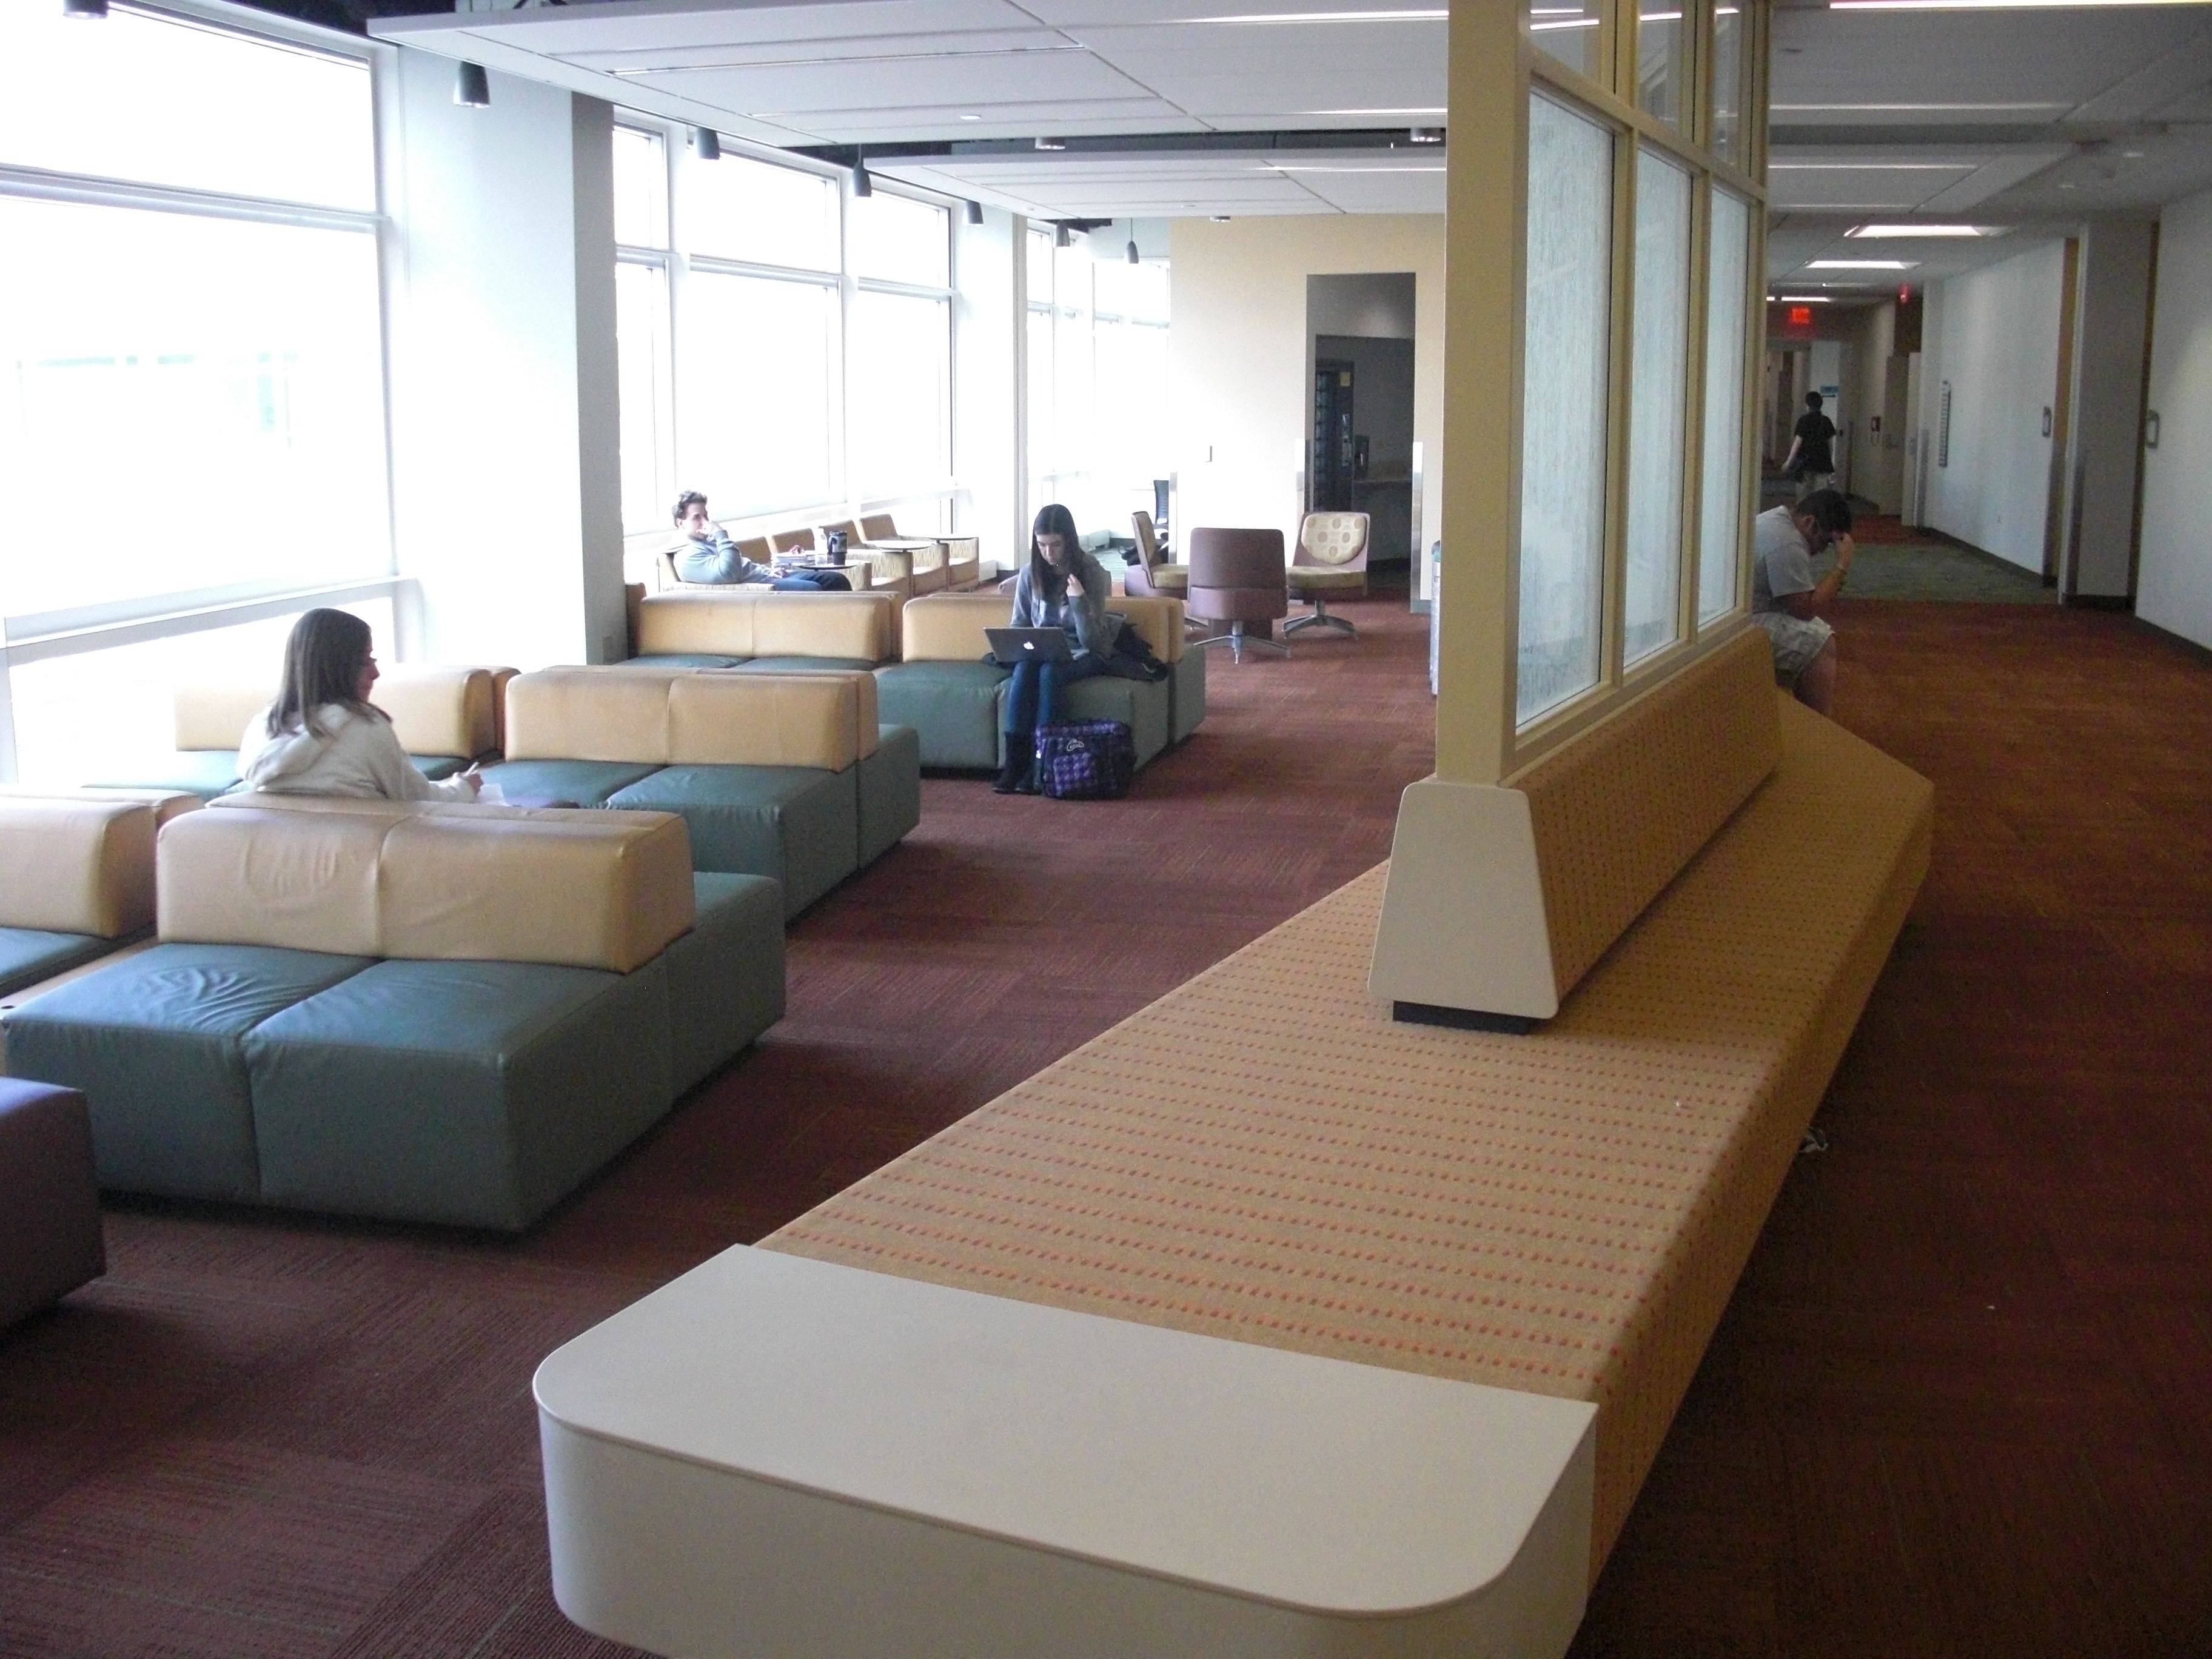 College of dupage berg instruction center_student services